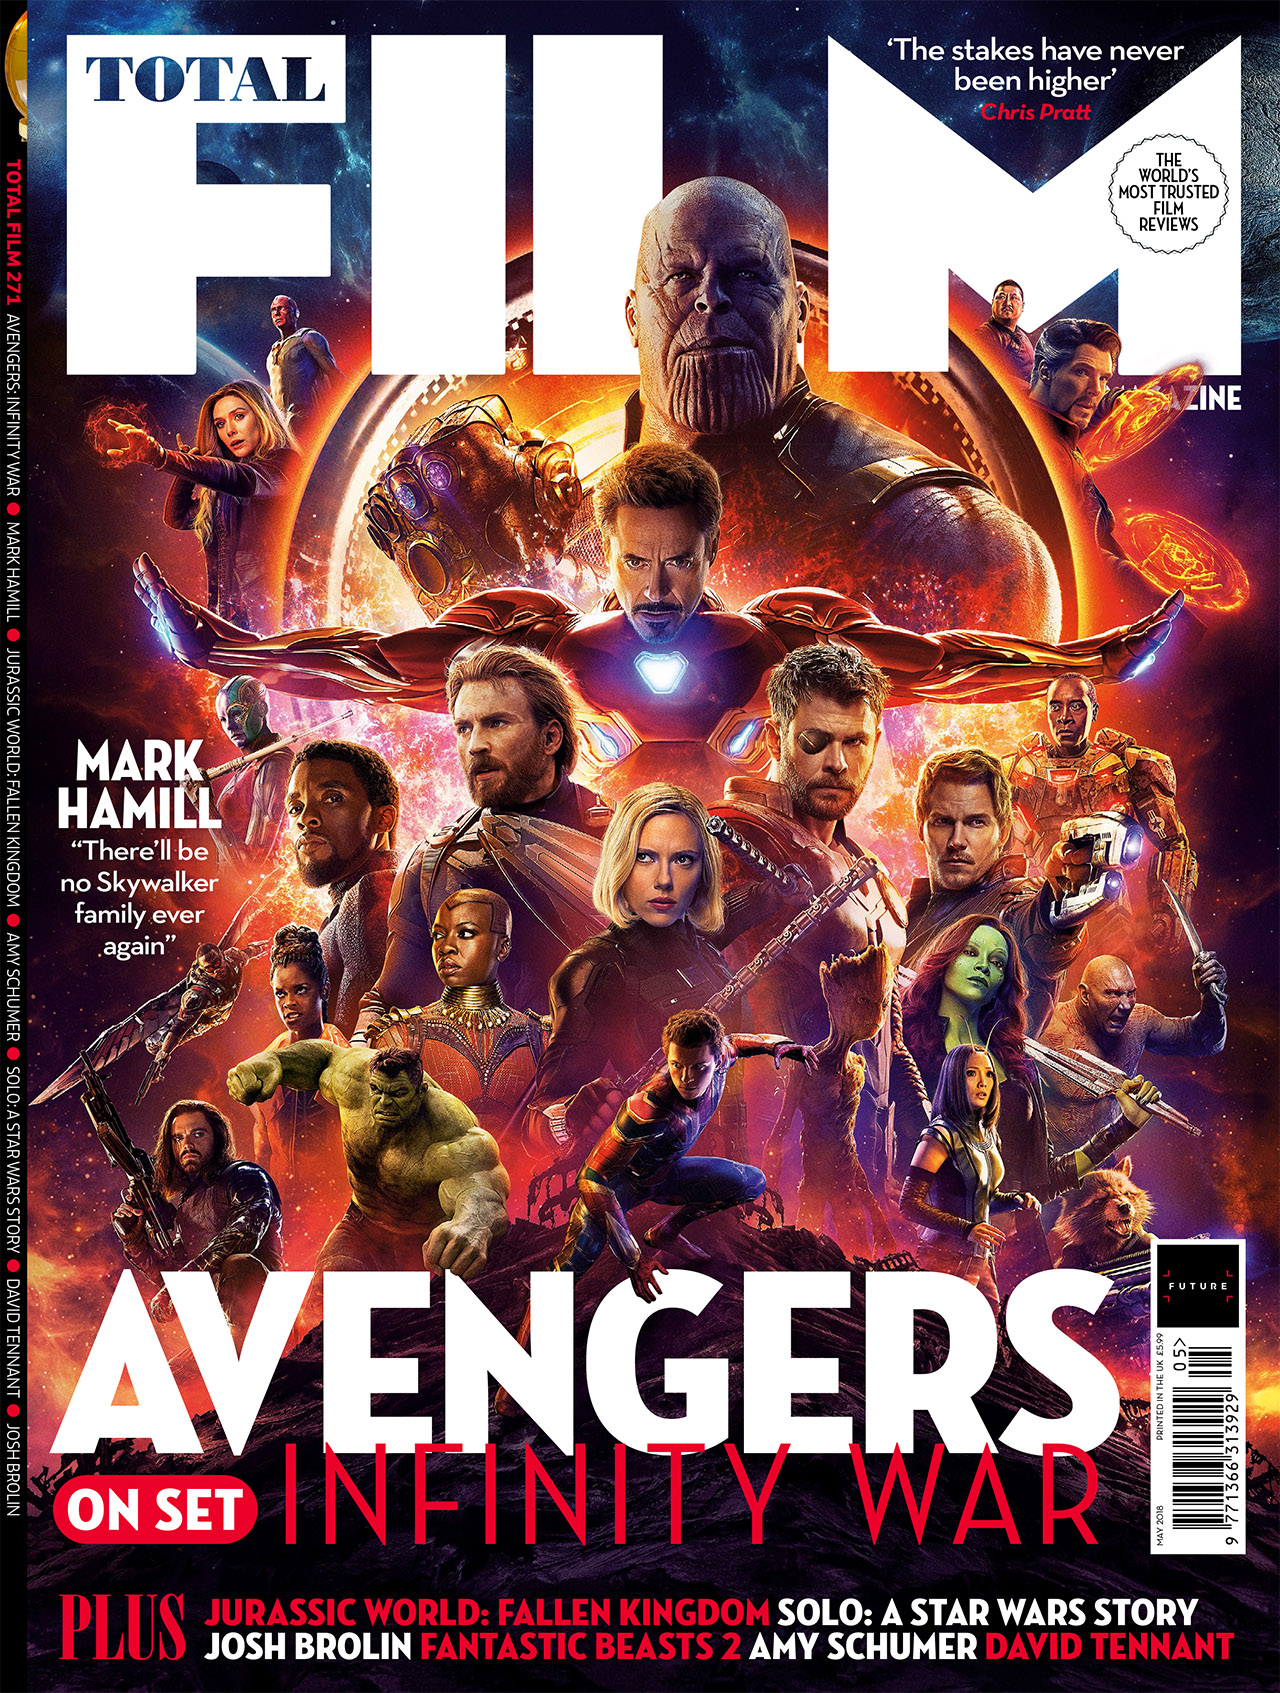 new 'avengers: infinity war' images released for total film cover